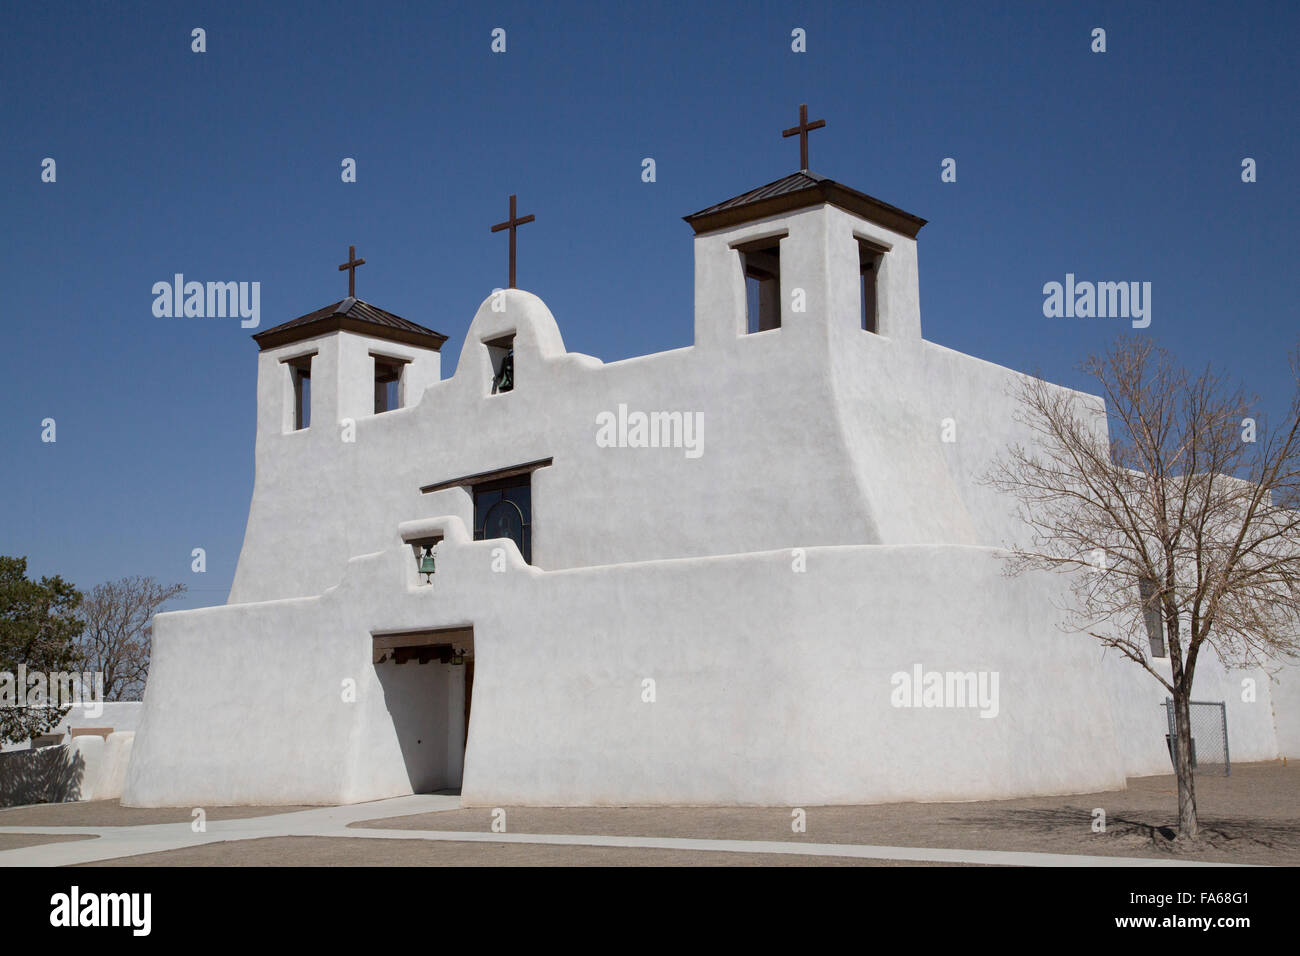 Isleta Pueblo, Saint Augustine Mission, originally built in 1612, New Mexico, USA - Stock Image